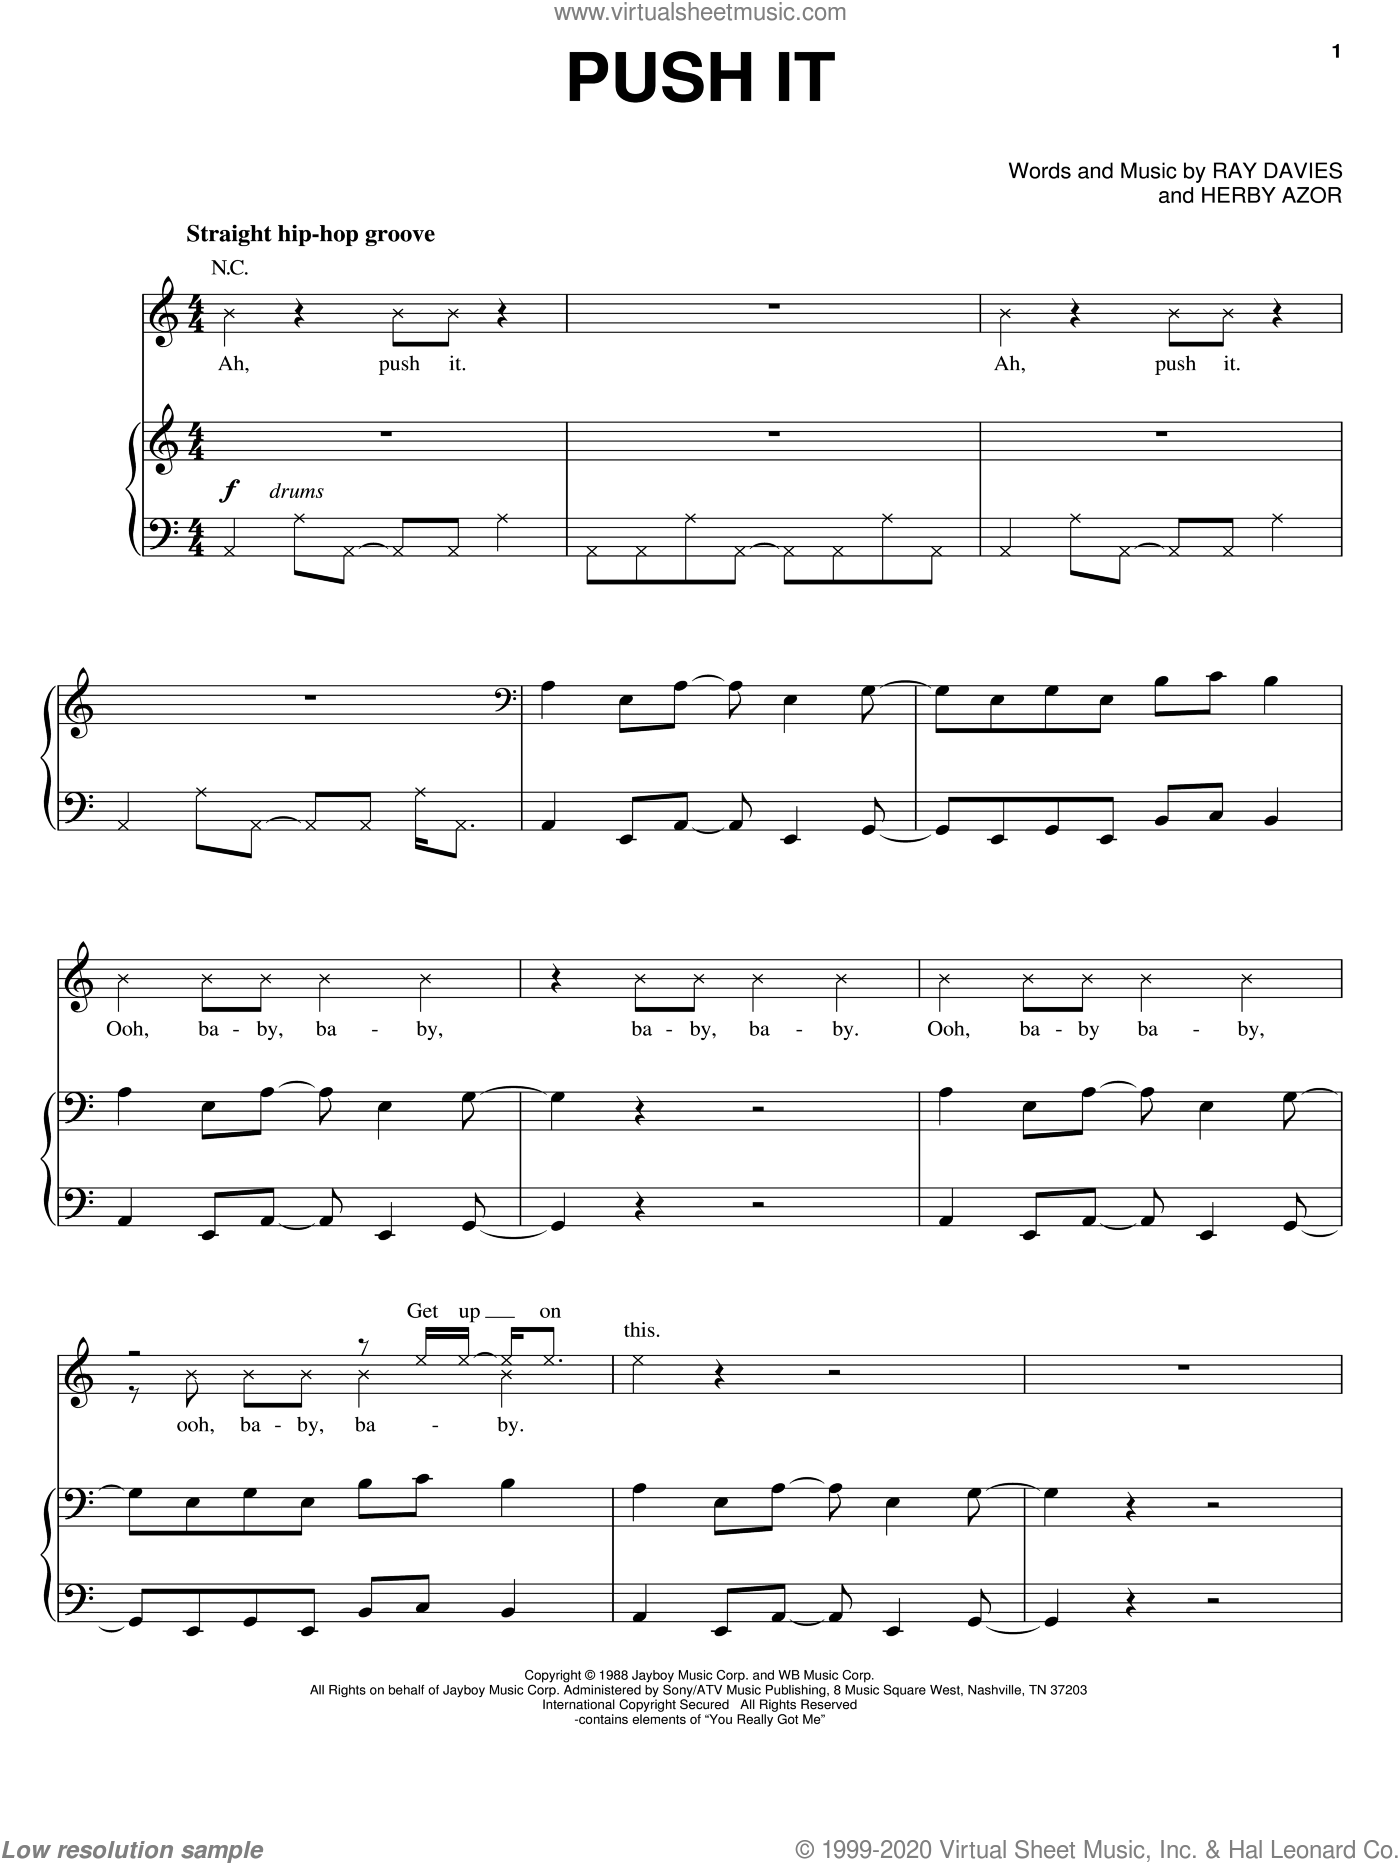 Push It sheet music for voice, piano or guitar by Salt-N-Pepa, Miscellaneous, Herby Azor and Ray Davies, intermediate skill level